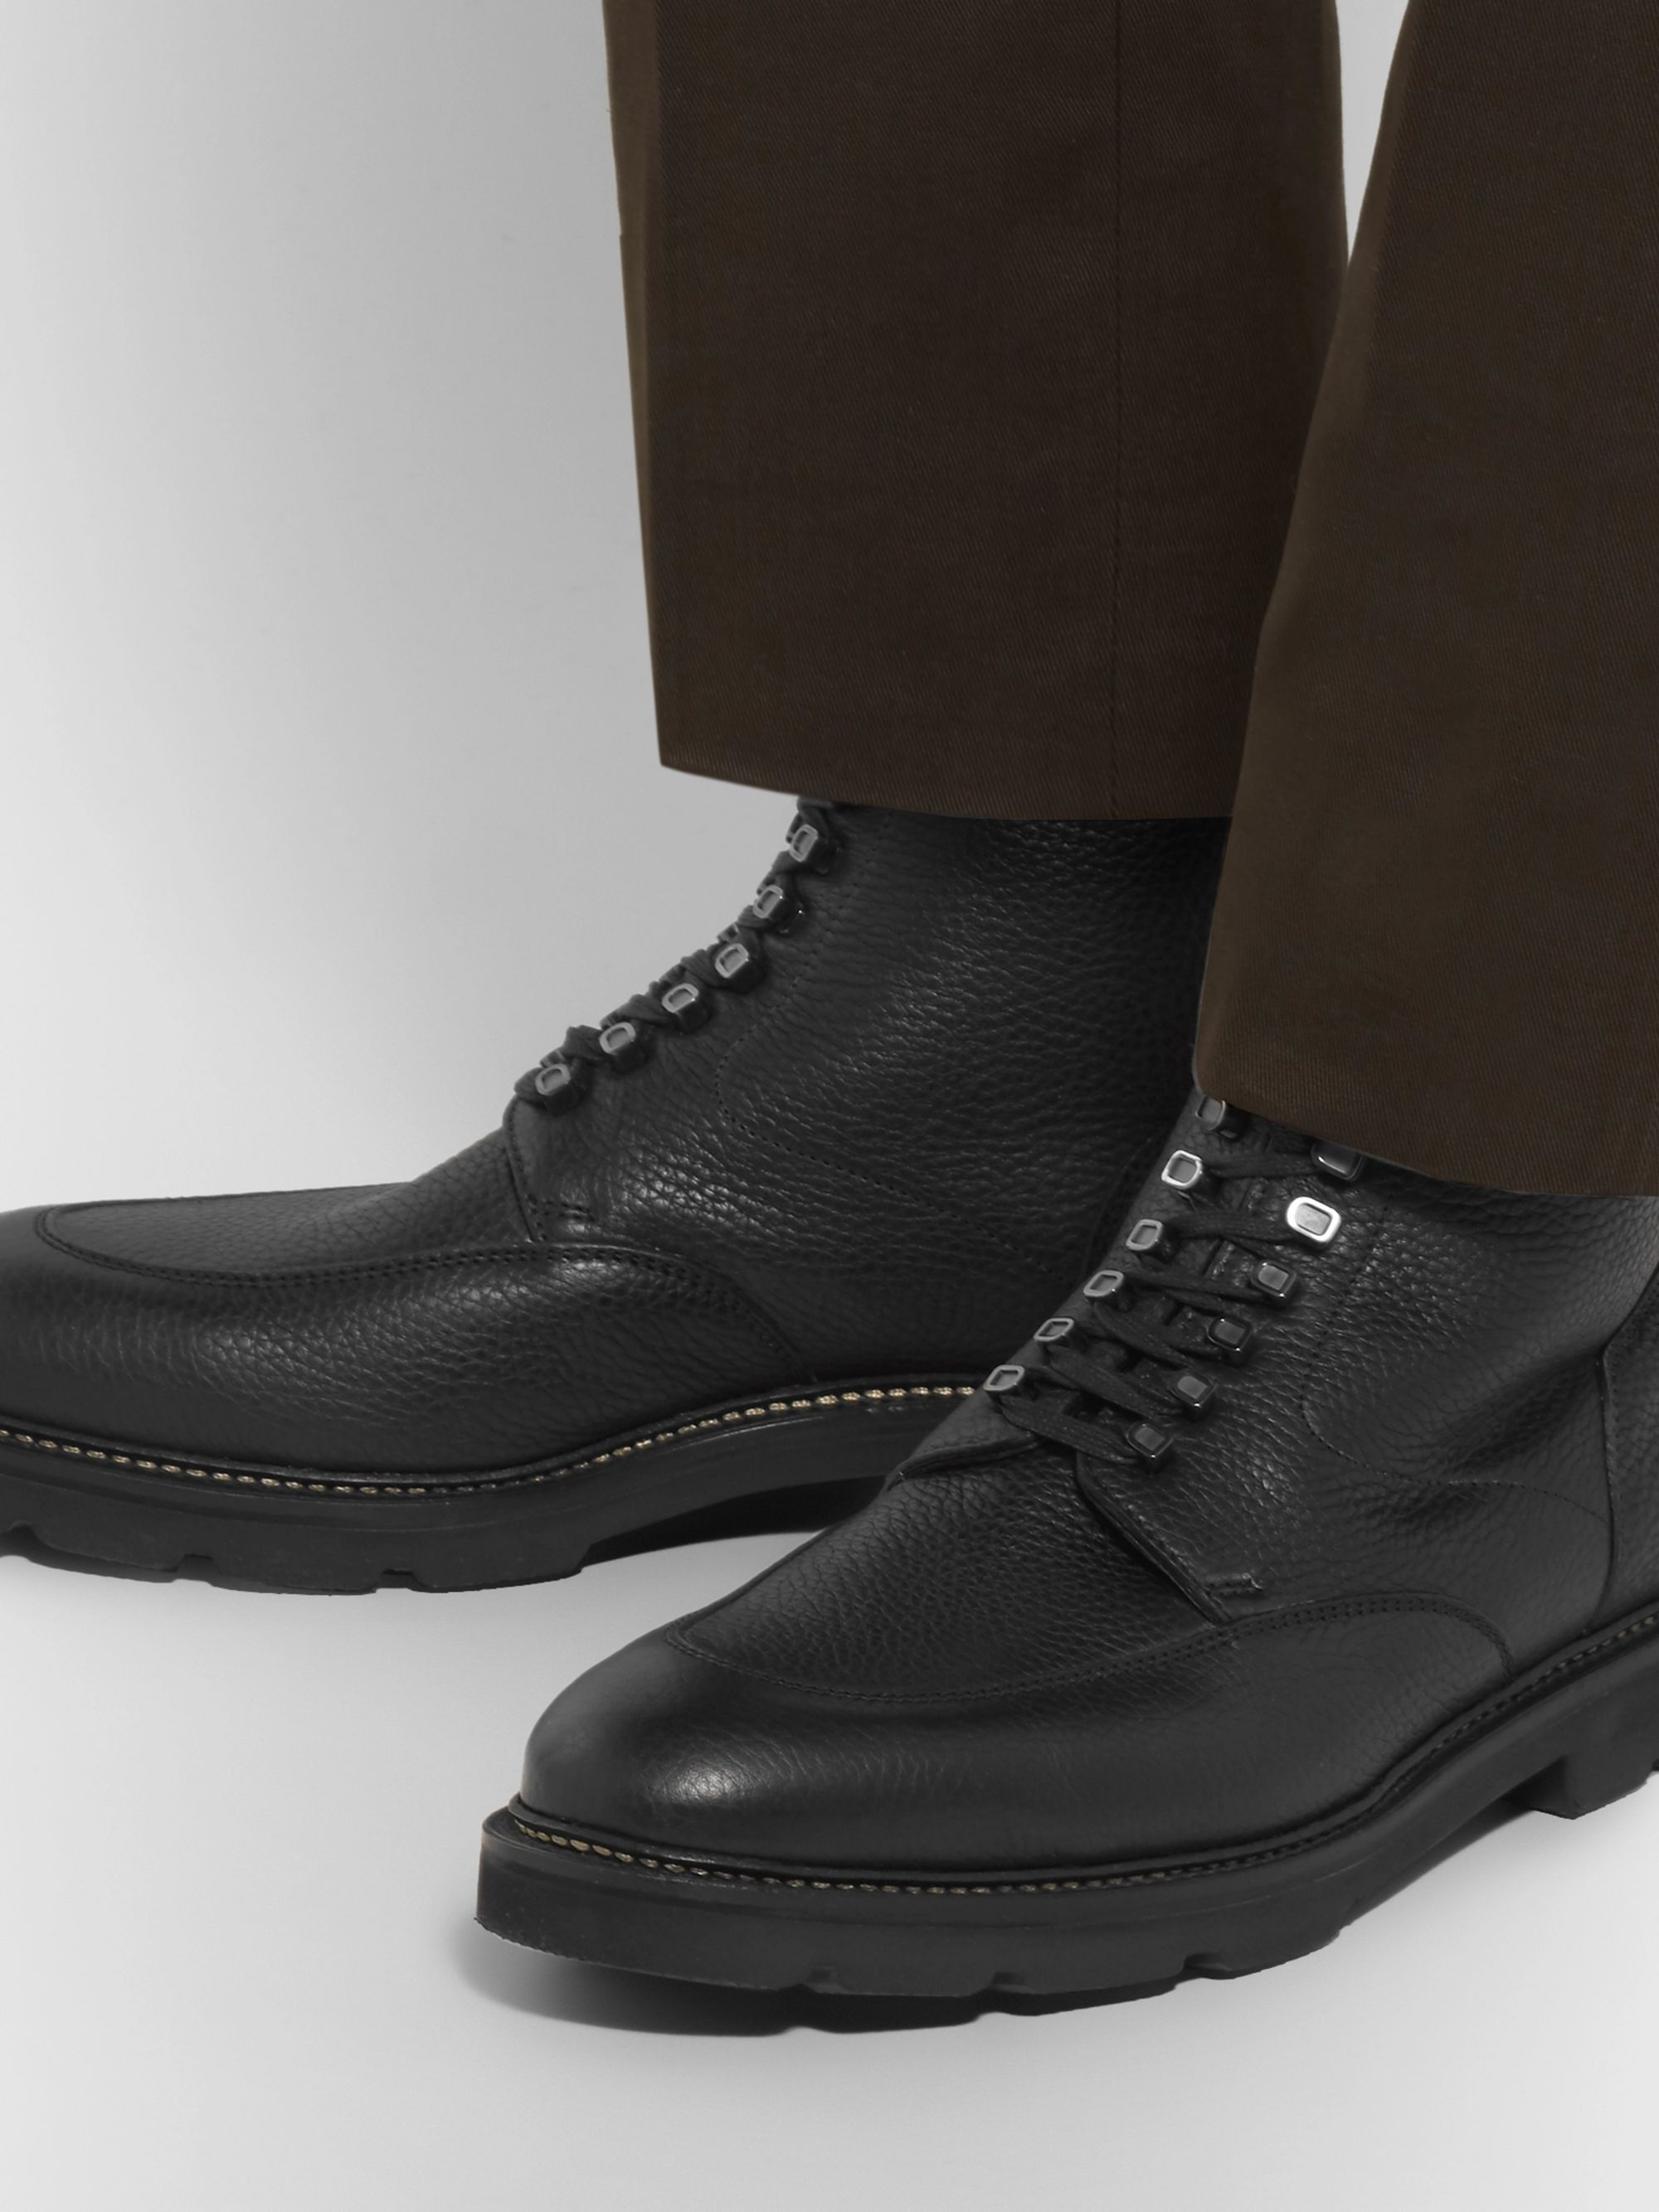 John Lobb Helston Pebble-Grain Leather Boots